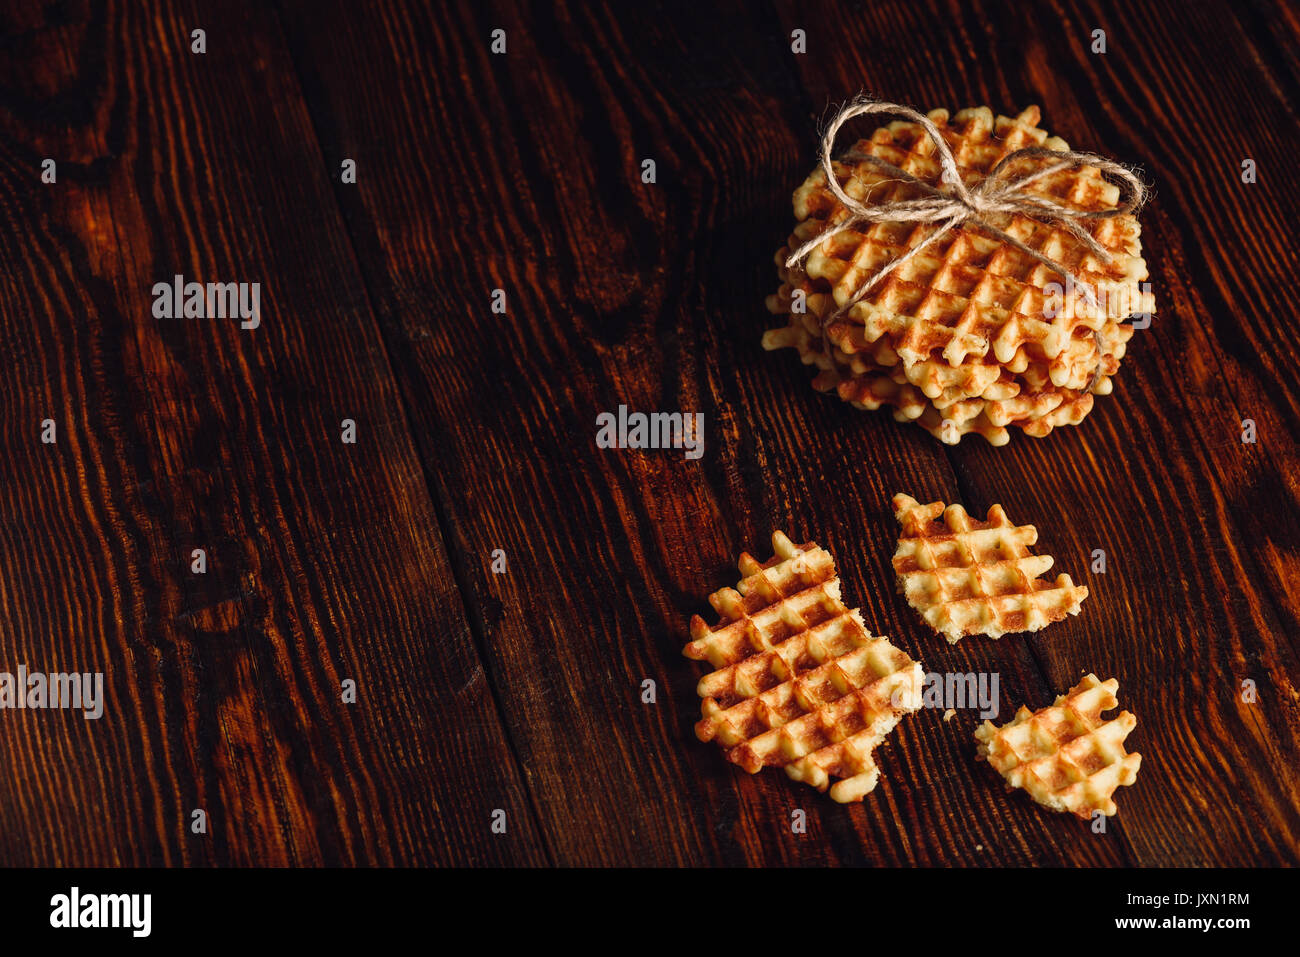 Belgian Waffles on Wooden Surface with Copy Space on the Left. - Stock Image